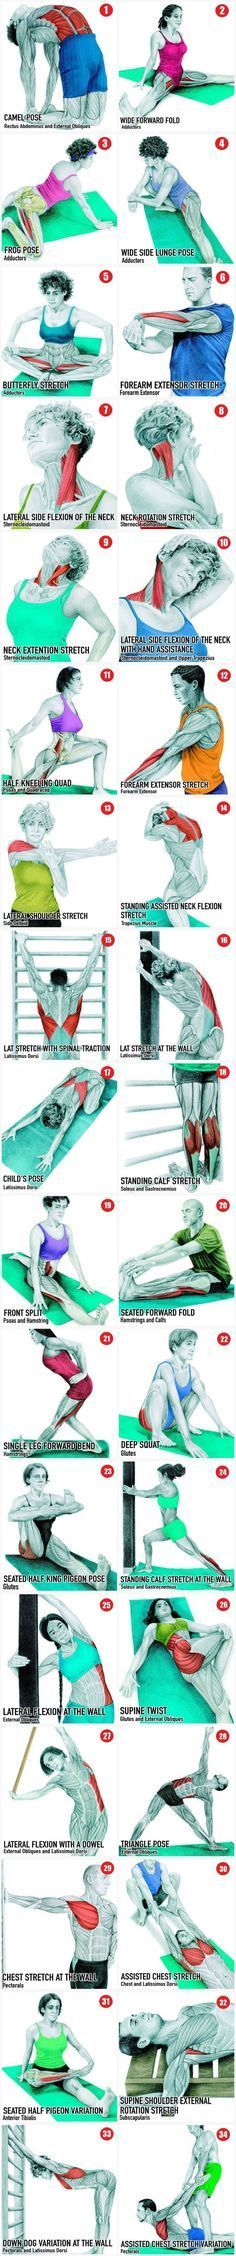 34 #Yoga Stretches And Main Muscles Involved #Diet                                                                                                                                                                                 More